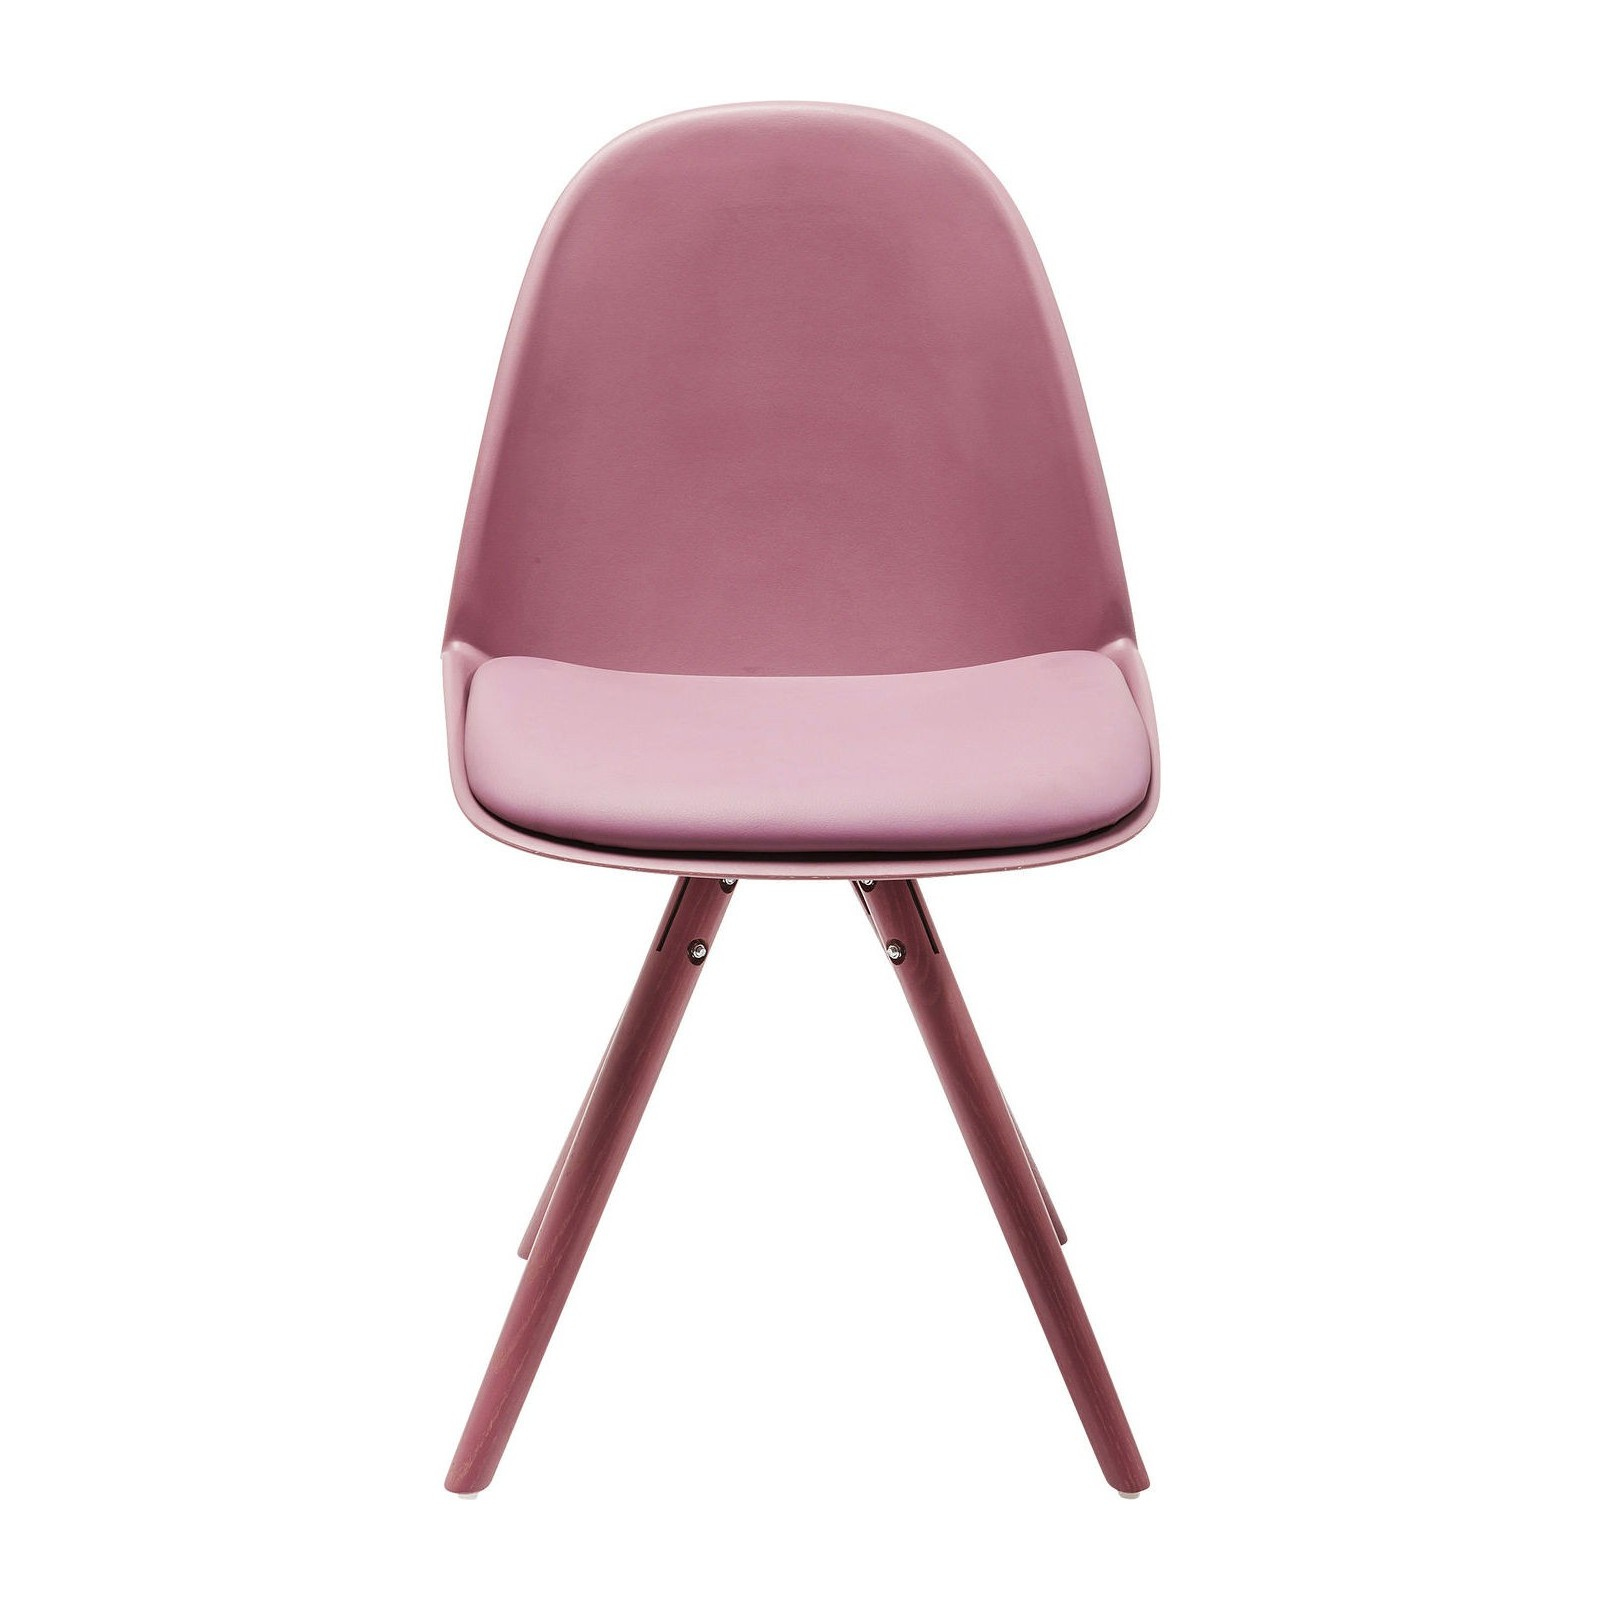 Chaise Rose Scandinave Chaise Scandinave Fuchsia - Candy World - Kare Design